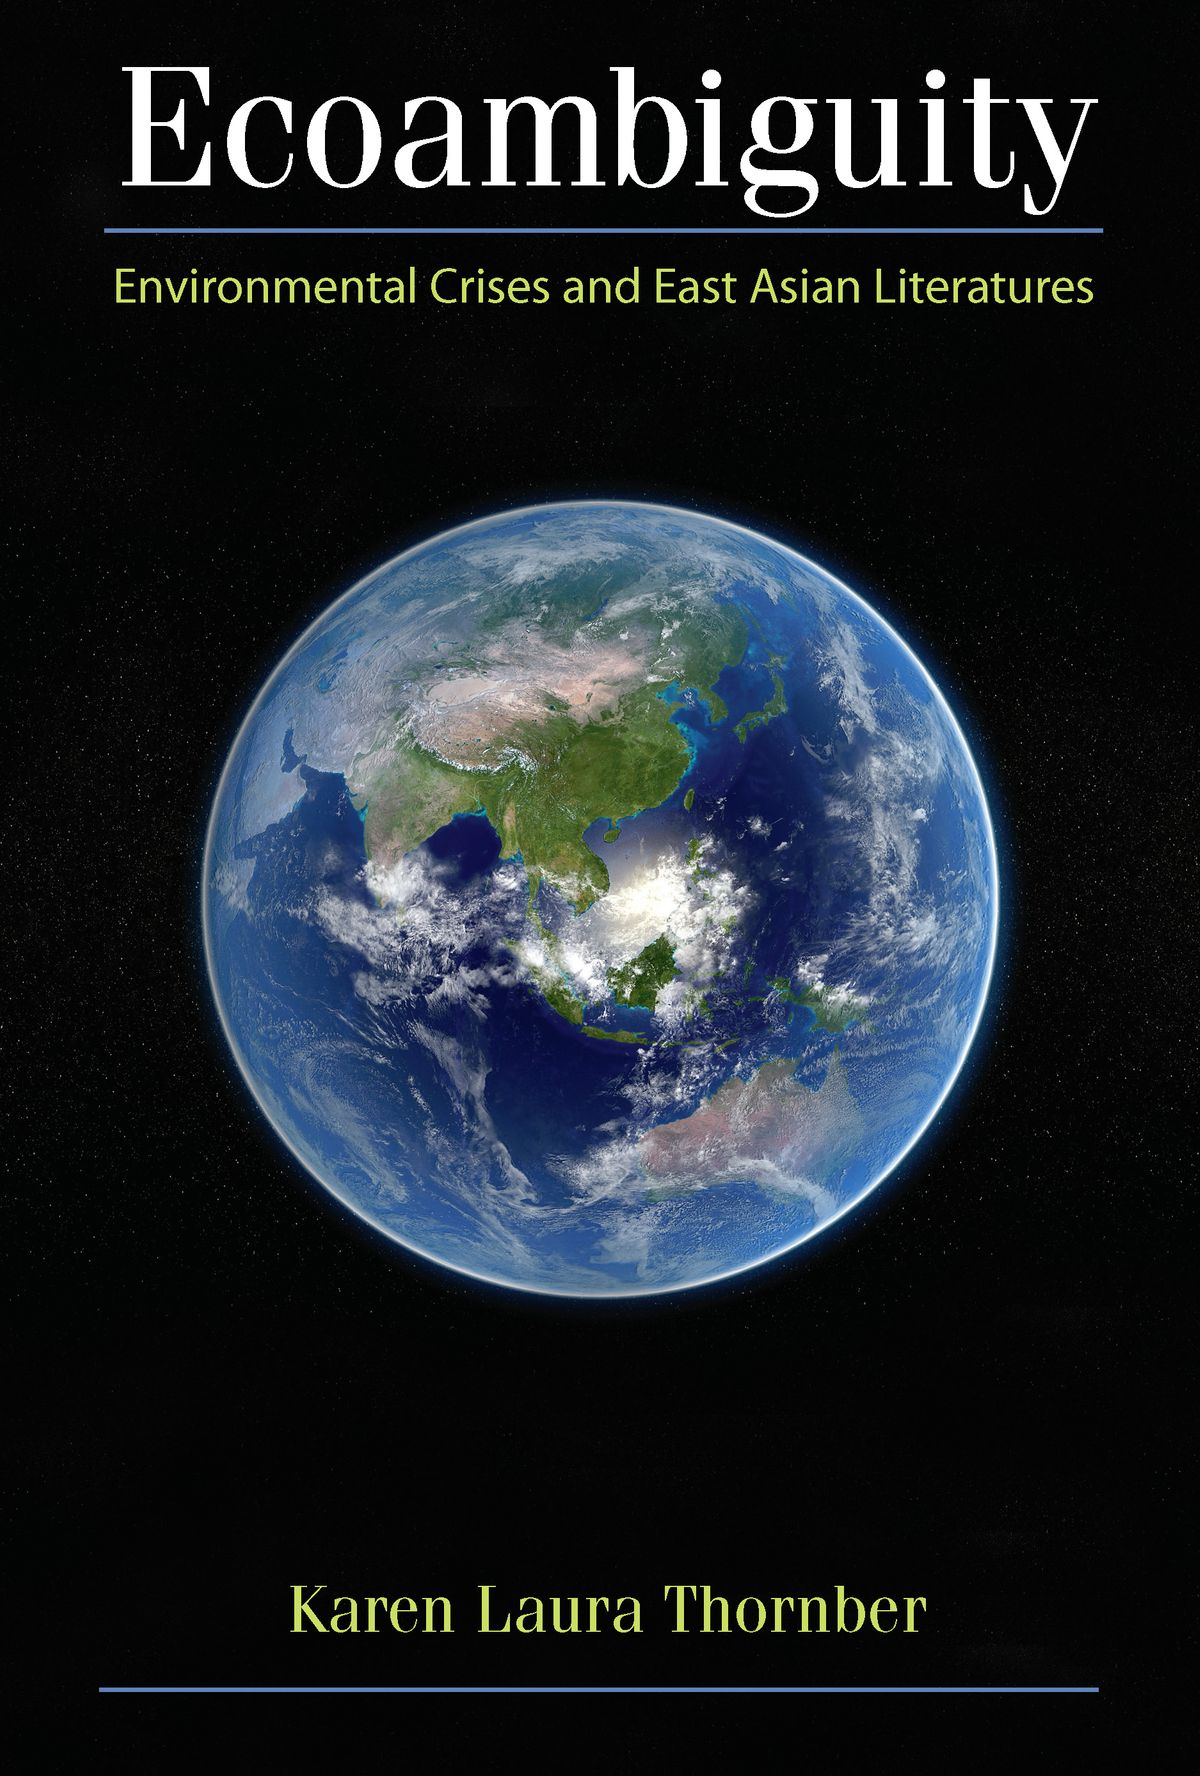 Công trình Ecoambiguity: Environmental Crises and East Asian Literatures (2012)